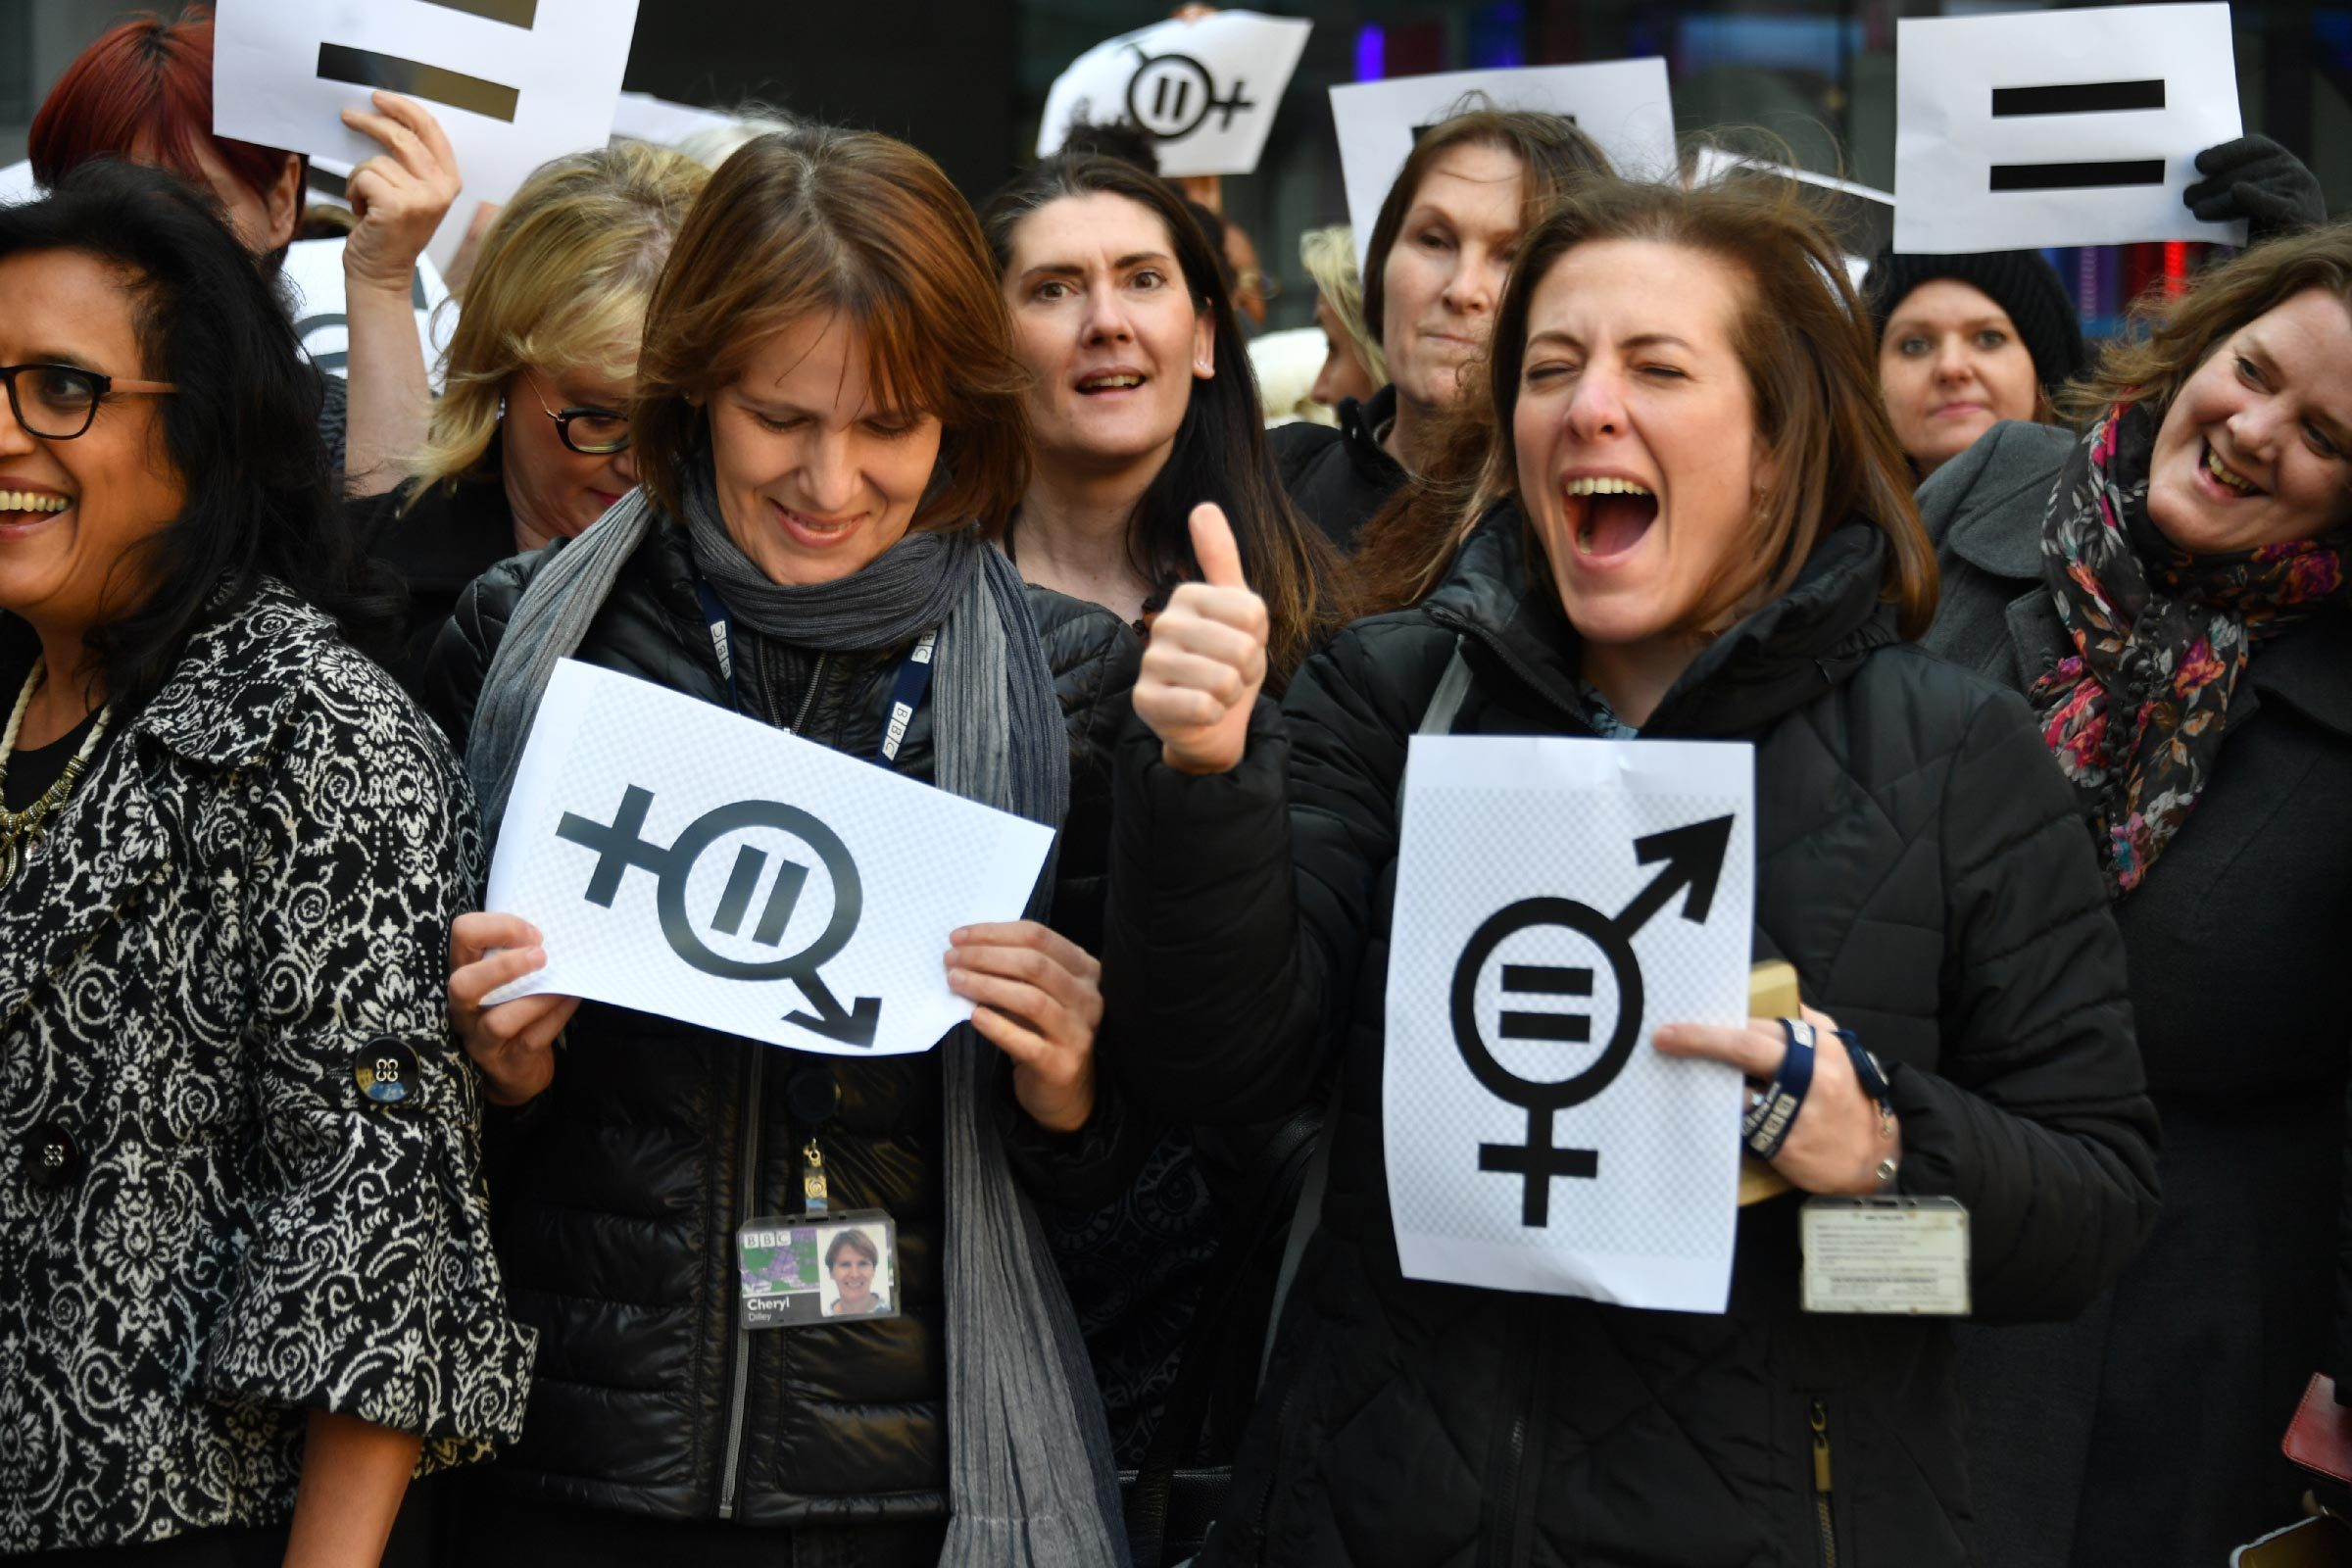 Hundreds of BBC staff protest over equal pay outside the Corporation's headquarters. Former China editor Carrie Gracie spearheaded the campaign